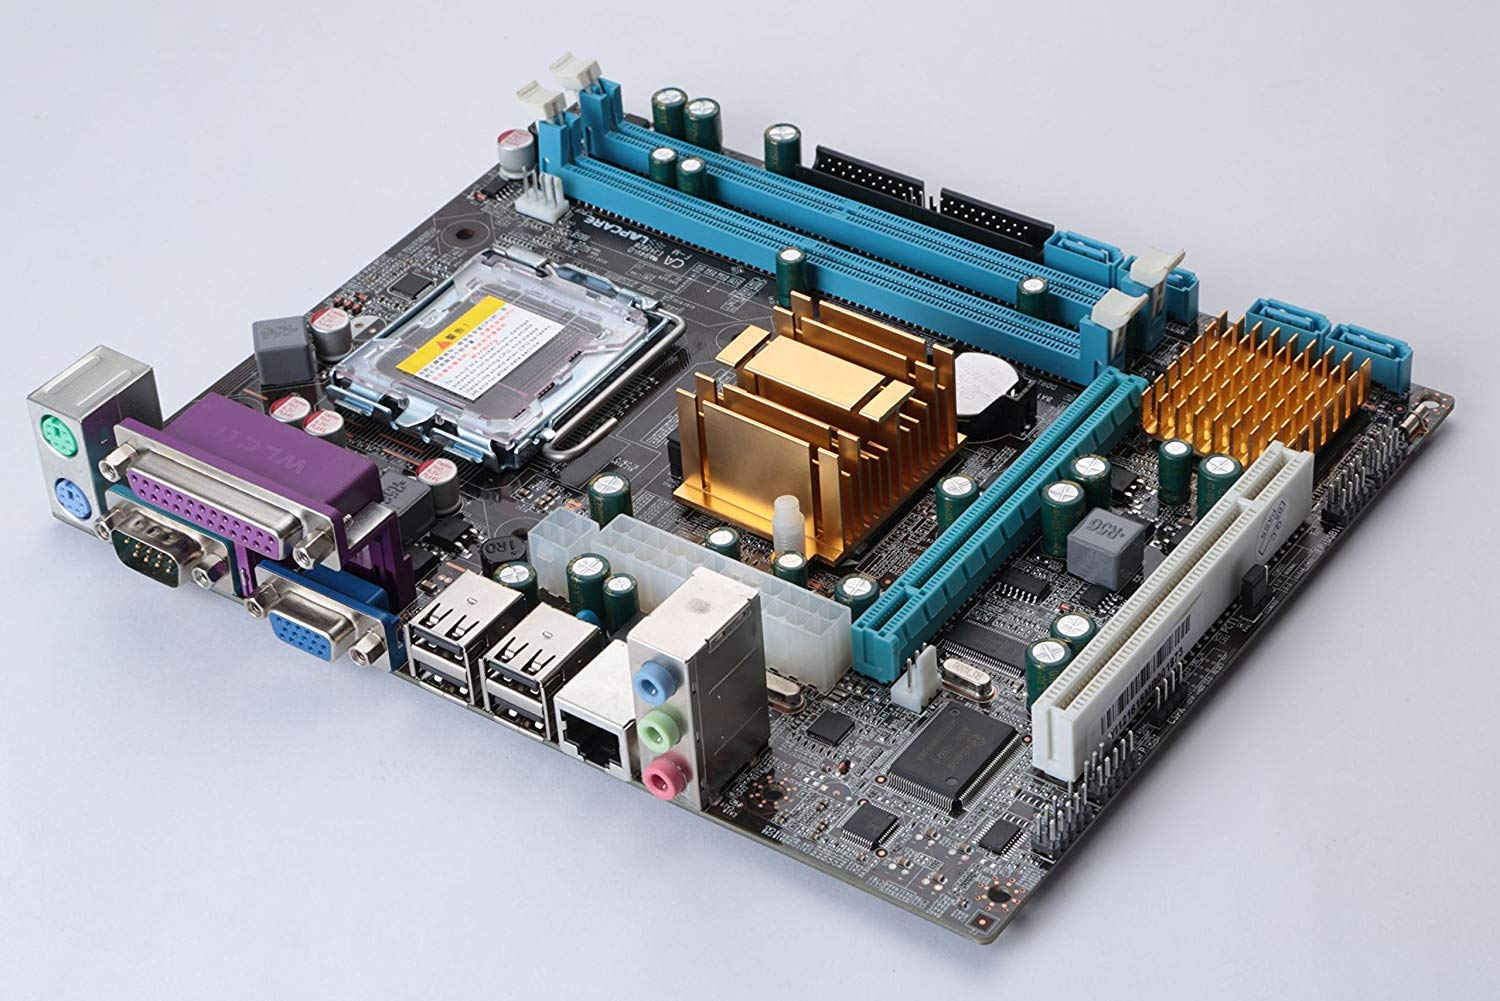 Amazon.in: Buy Lapcare H61 1155 Chipset Motherboard Socket (Multicolor)  Online at Low Prices in India | Lapcare Reviews & Ratings